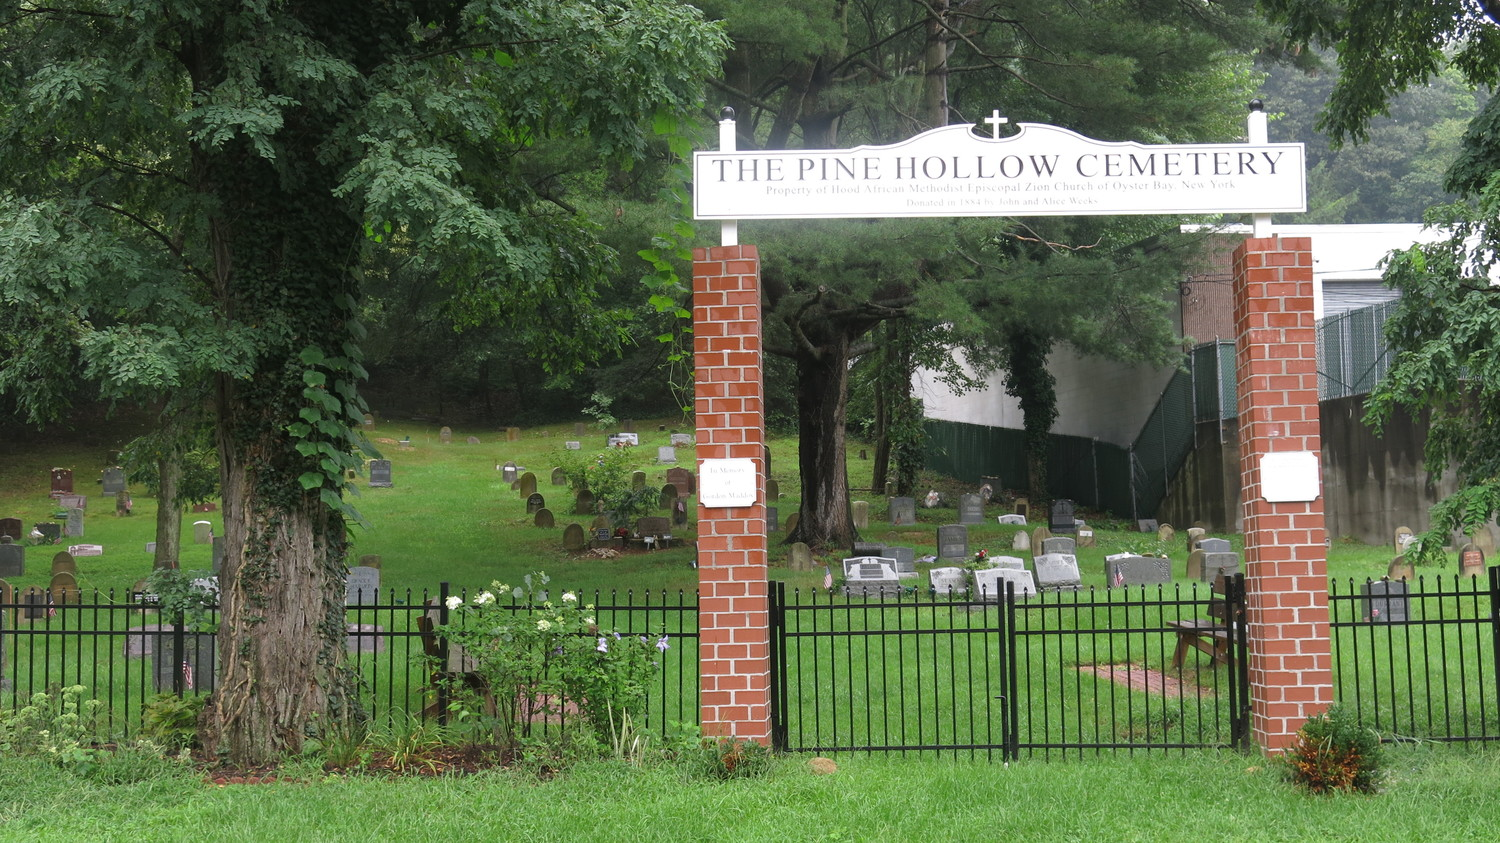 Pine Hollow Cemetery, in Oyster Bay, is now included in the National Registry of Historic Places.